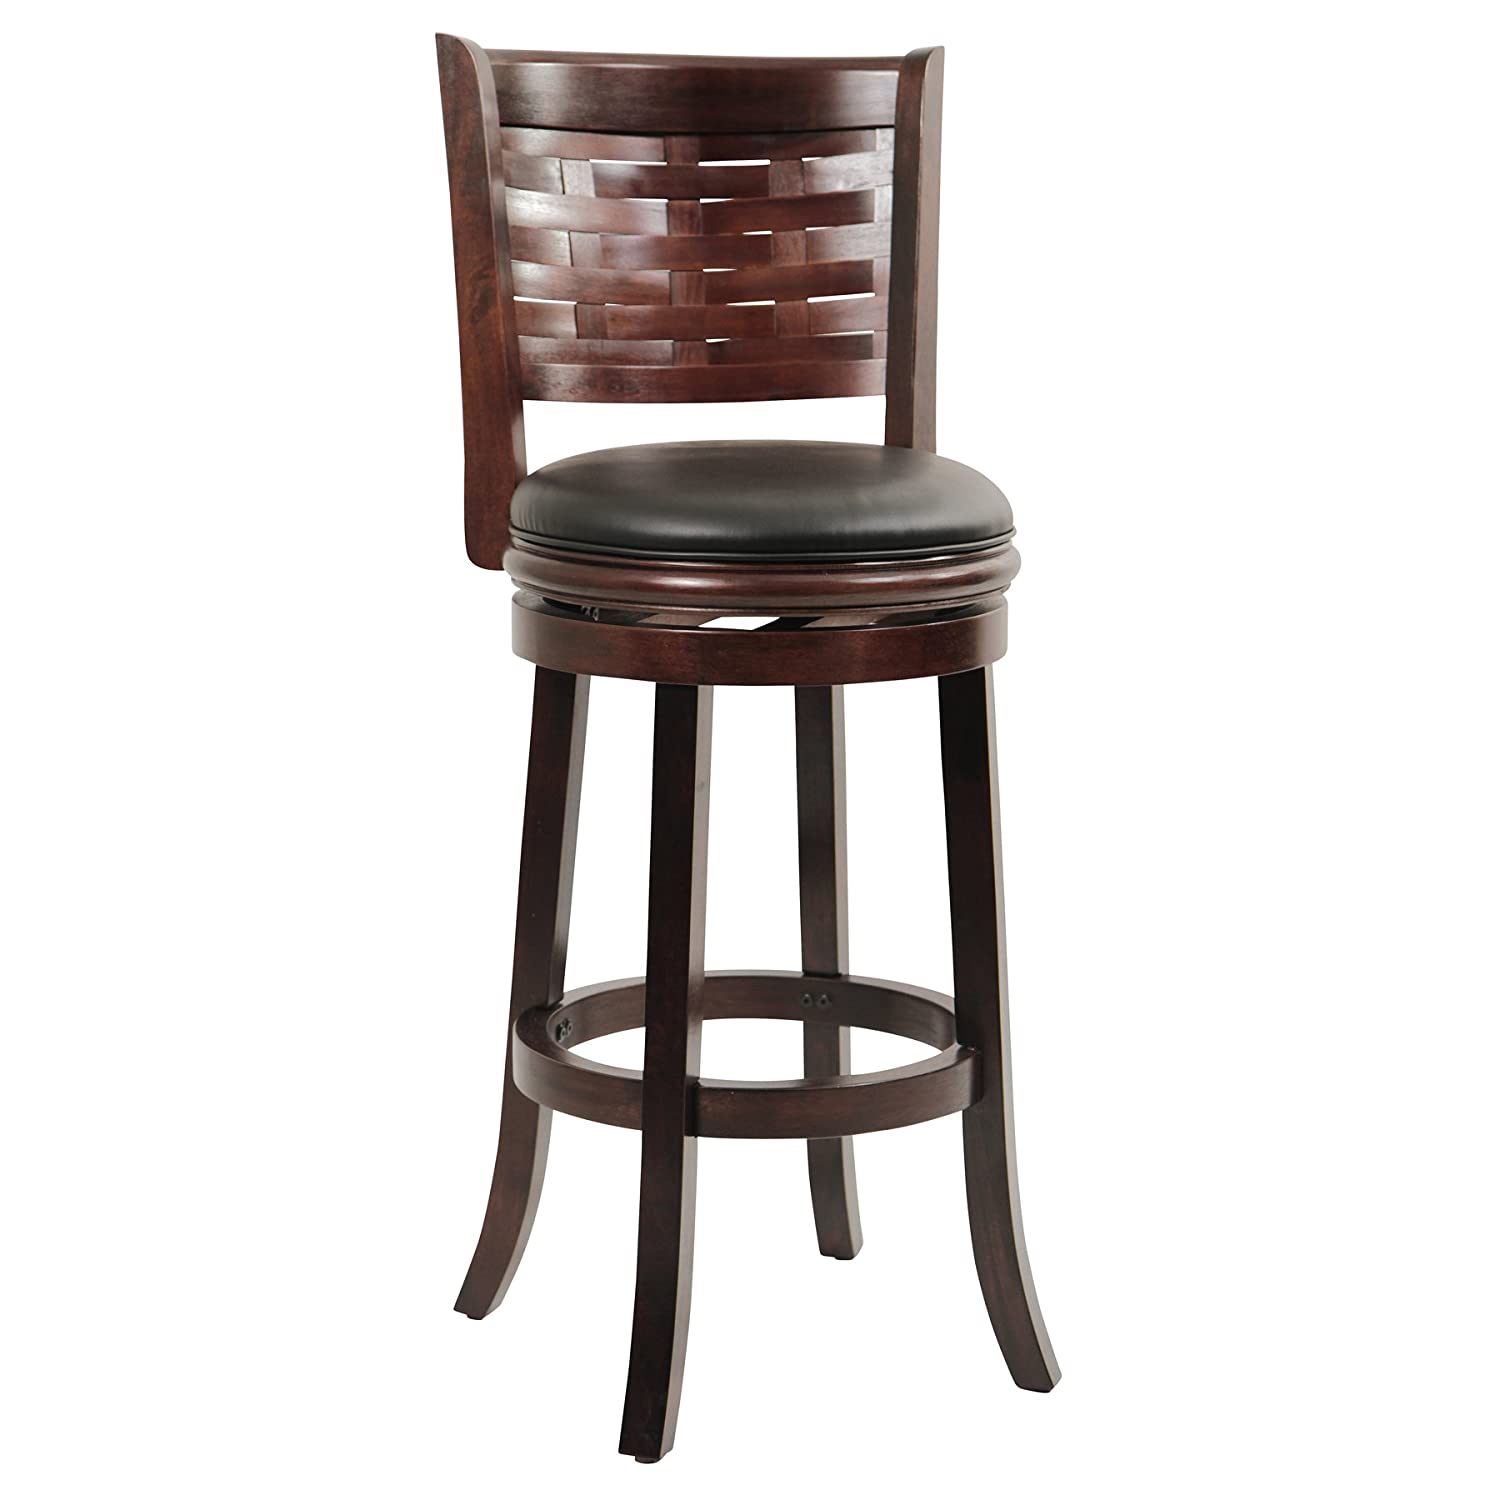 Amazon.com Boraam 48029 Sumatra Bar Height Swivel Stool 29-Inch Cappuccino Kitchen u0026 Dining  sc 1 st  Amazon.com & Amazon.com: Boraam 48029 Sumatra Bar Height Swivel Stool 29-Inch ... islam-shia.org